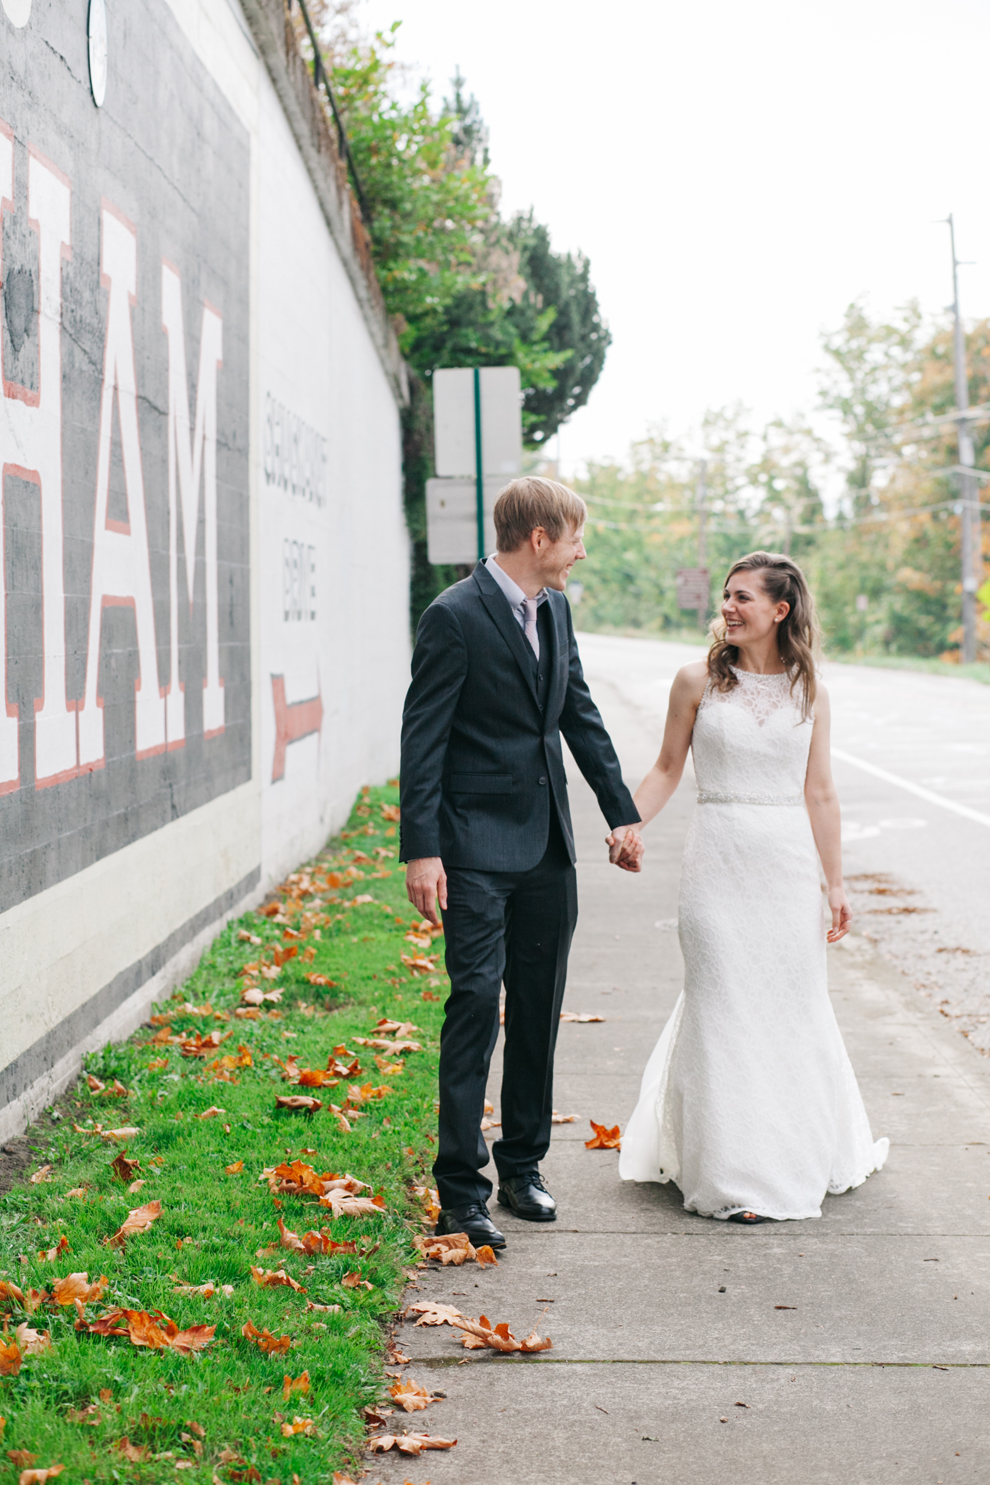 039-bellingham-washington-wedding-first-look-downtown-katheryn-moran-photography.jpg